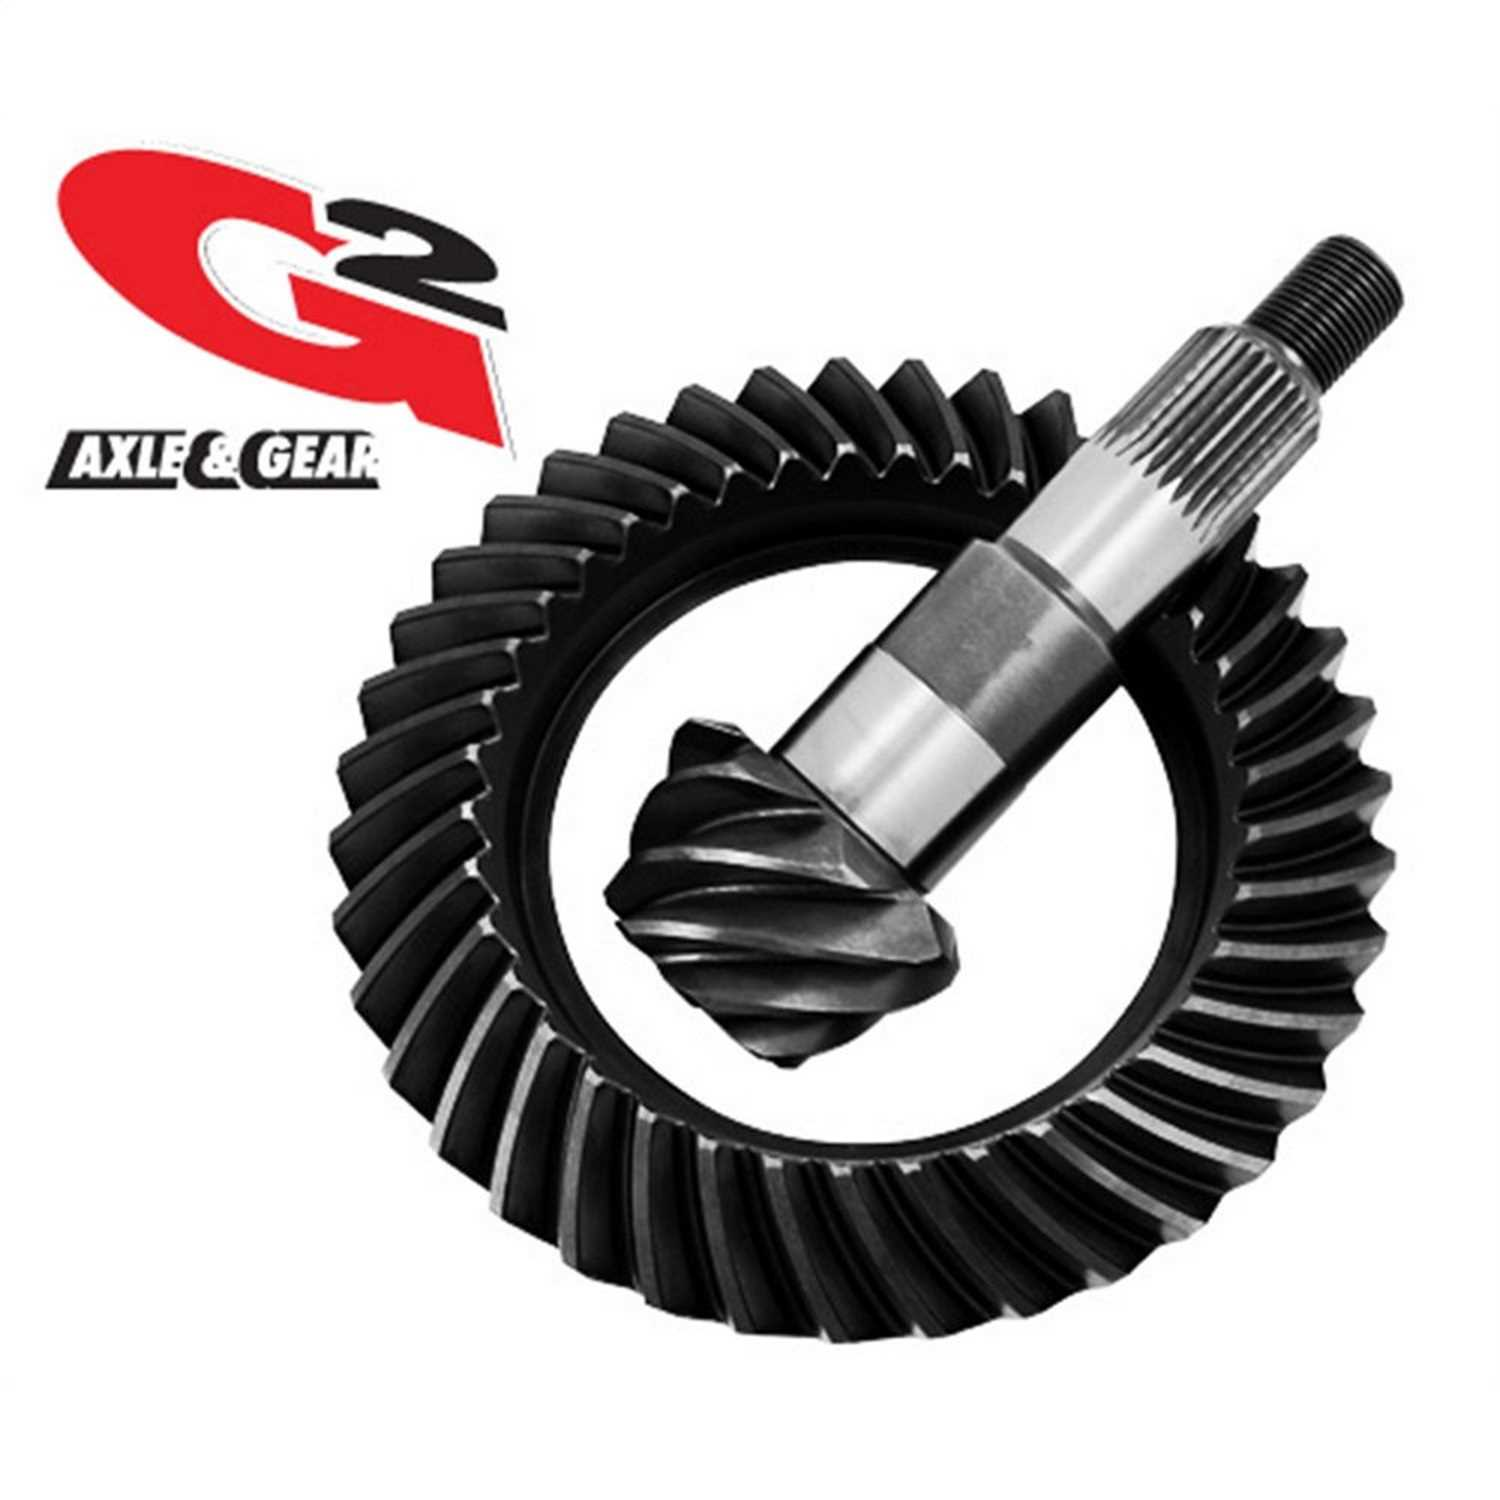 1-2026-342 G2 Axle and Gear Ring and Pinion Set